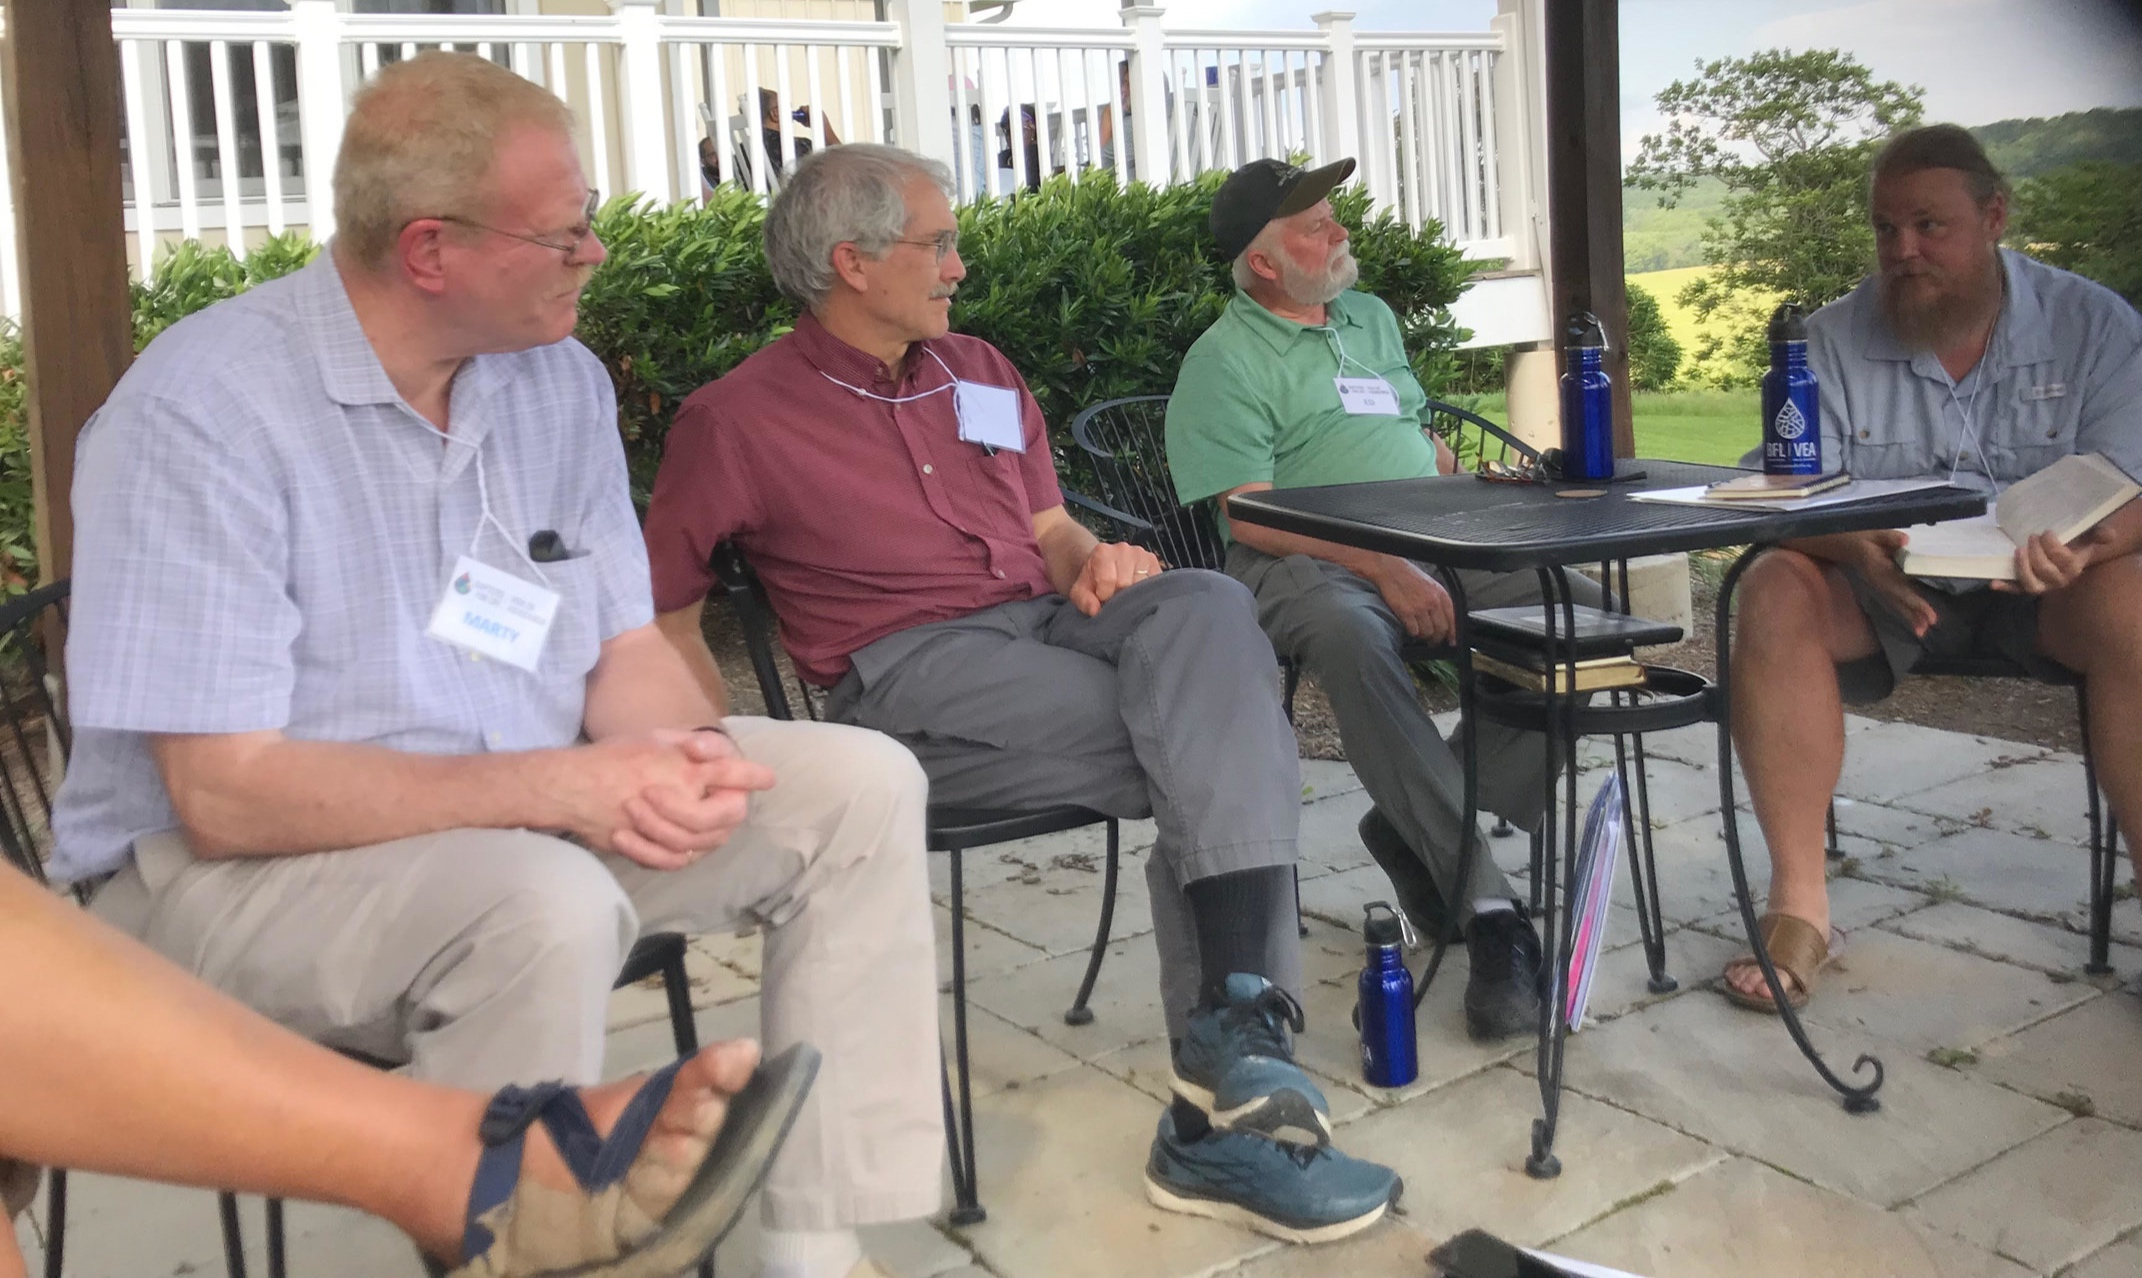 Group discussion at Claggett Retreat Center. Pictured far left is Marty Wolfe from St. Paul's in Mishawaka.